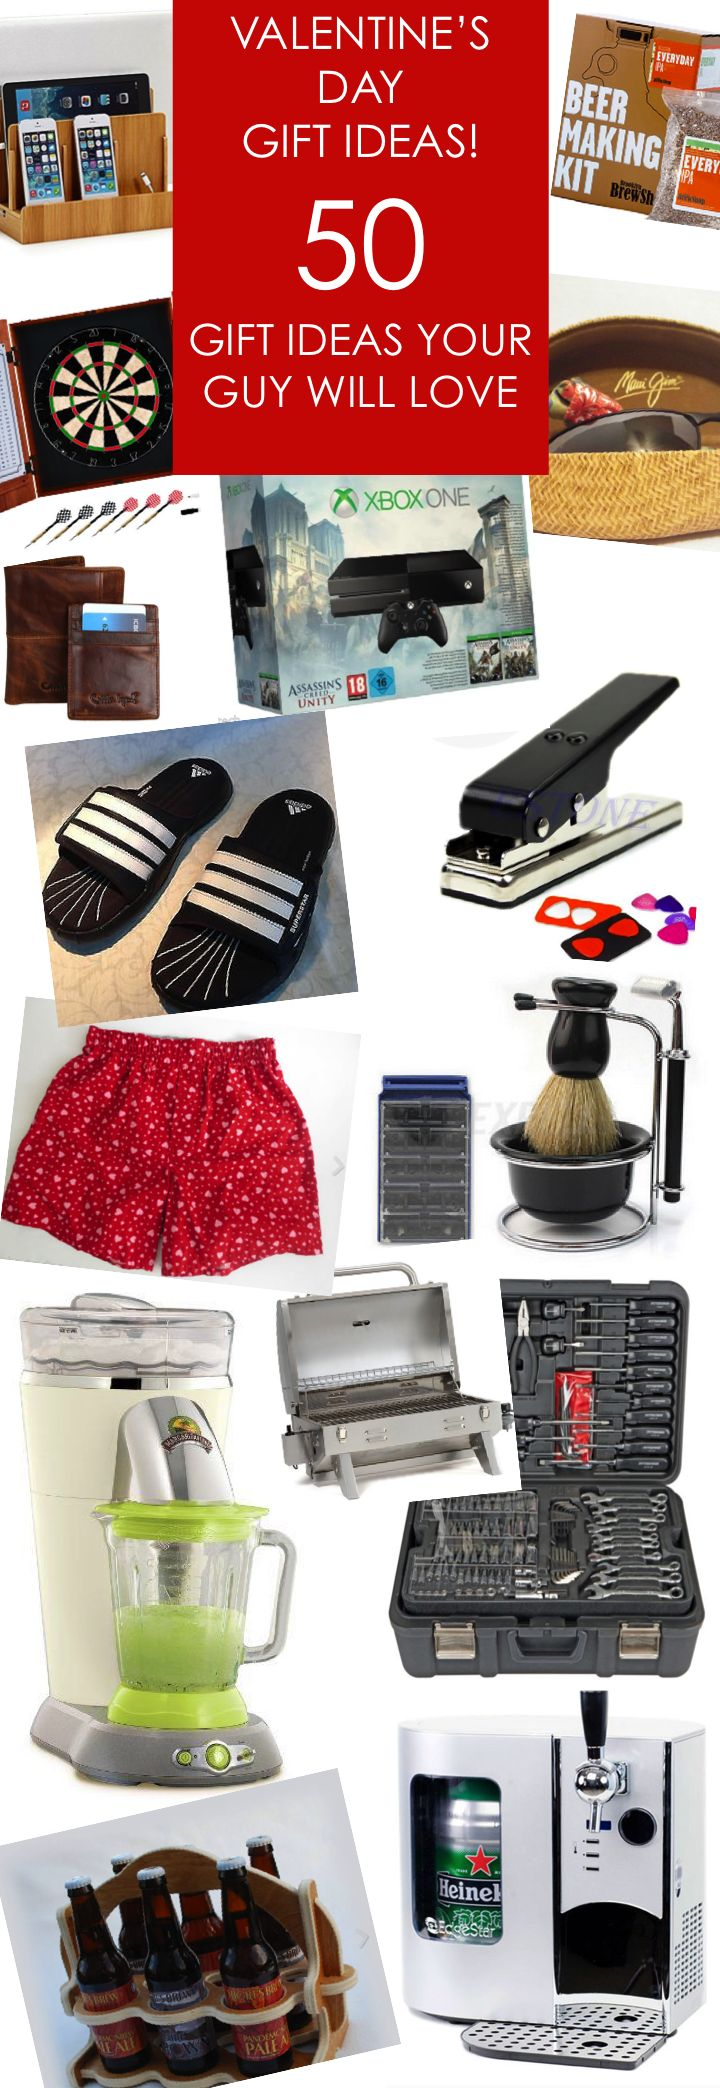 50 Valentine's Day Gift Ideas for Guys!